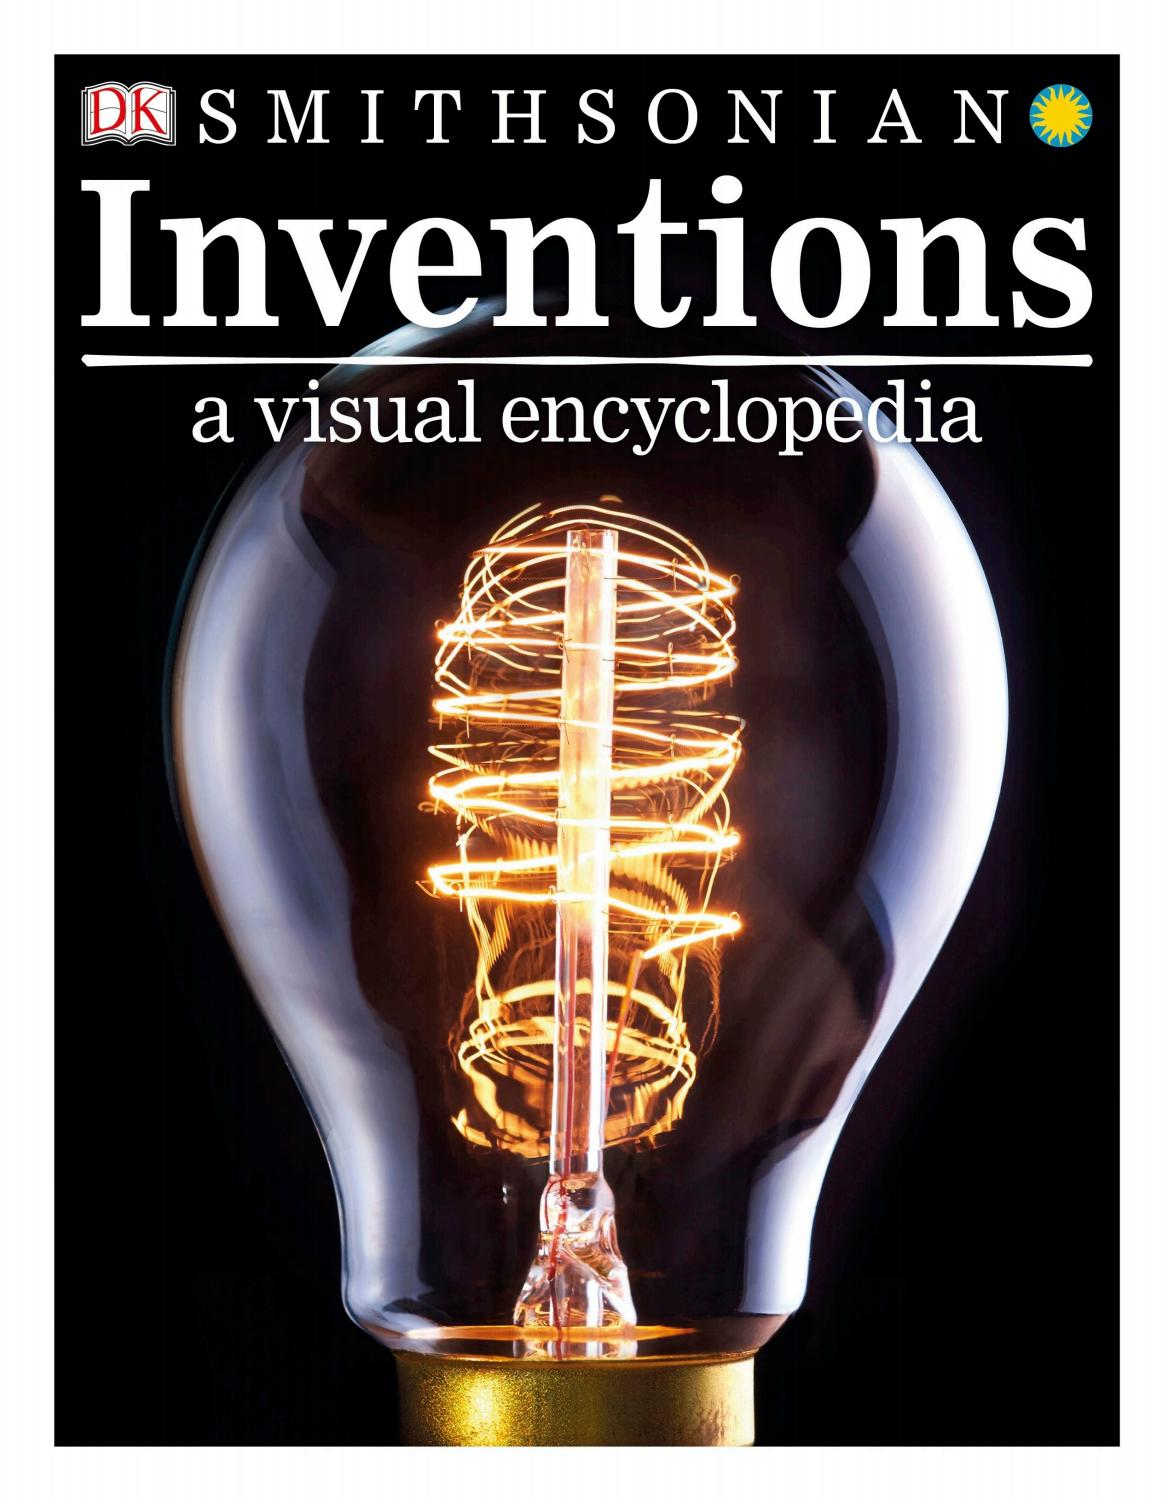 Inventions A Visual Encyclopedia By Dk Smithsonian Z Lib Org By Jinghua Issuu 1,155 cb 70 box products are offered for sale by suppliers on alibaba.com, of which paper boxes accounts for 3%. visual encyclopedia by dk smithsonian